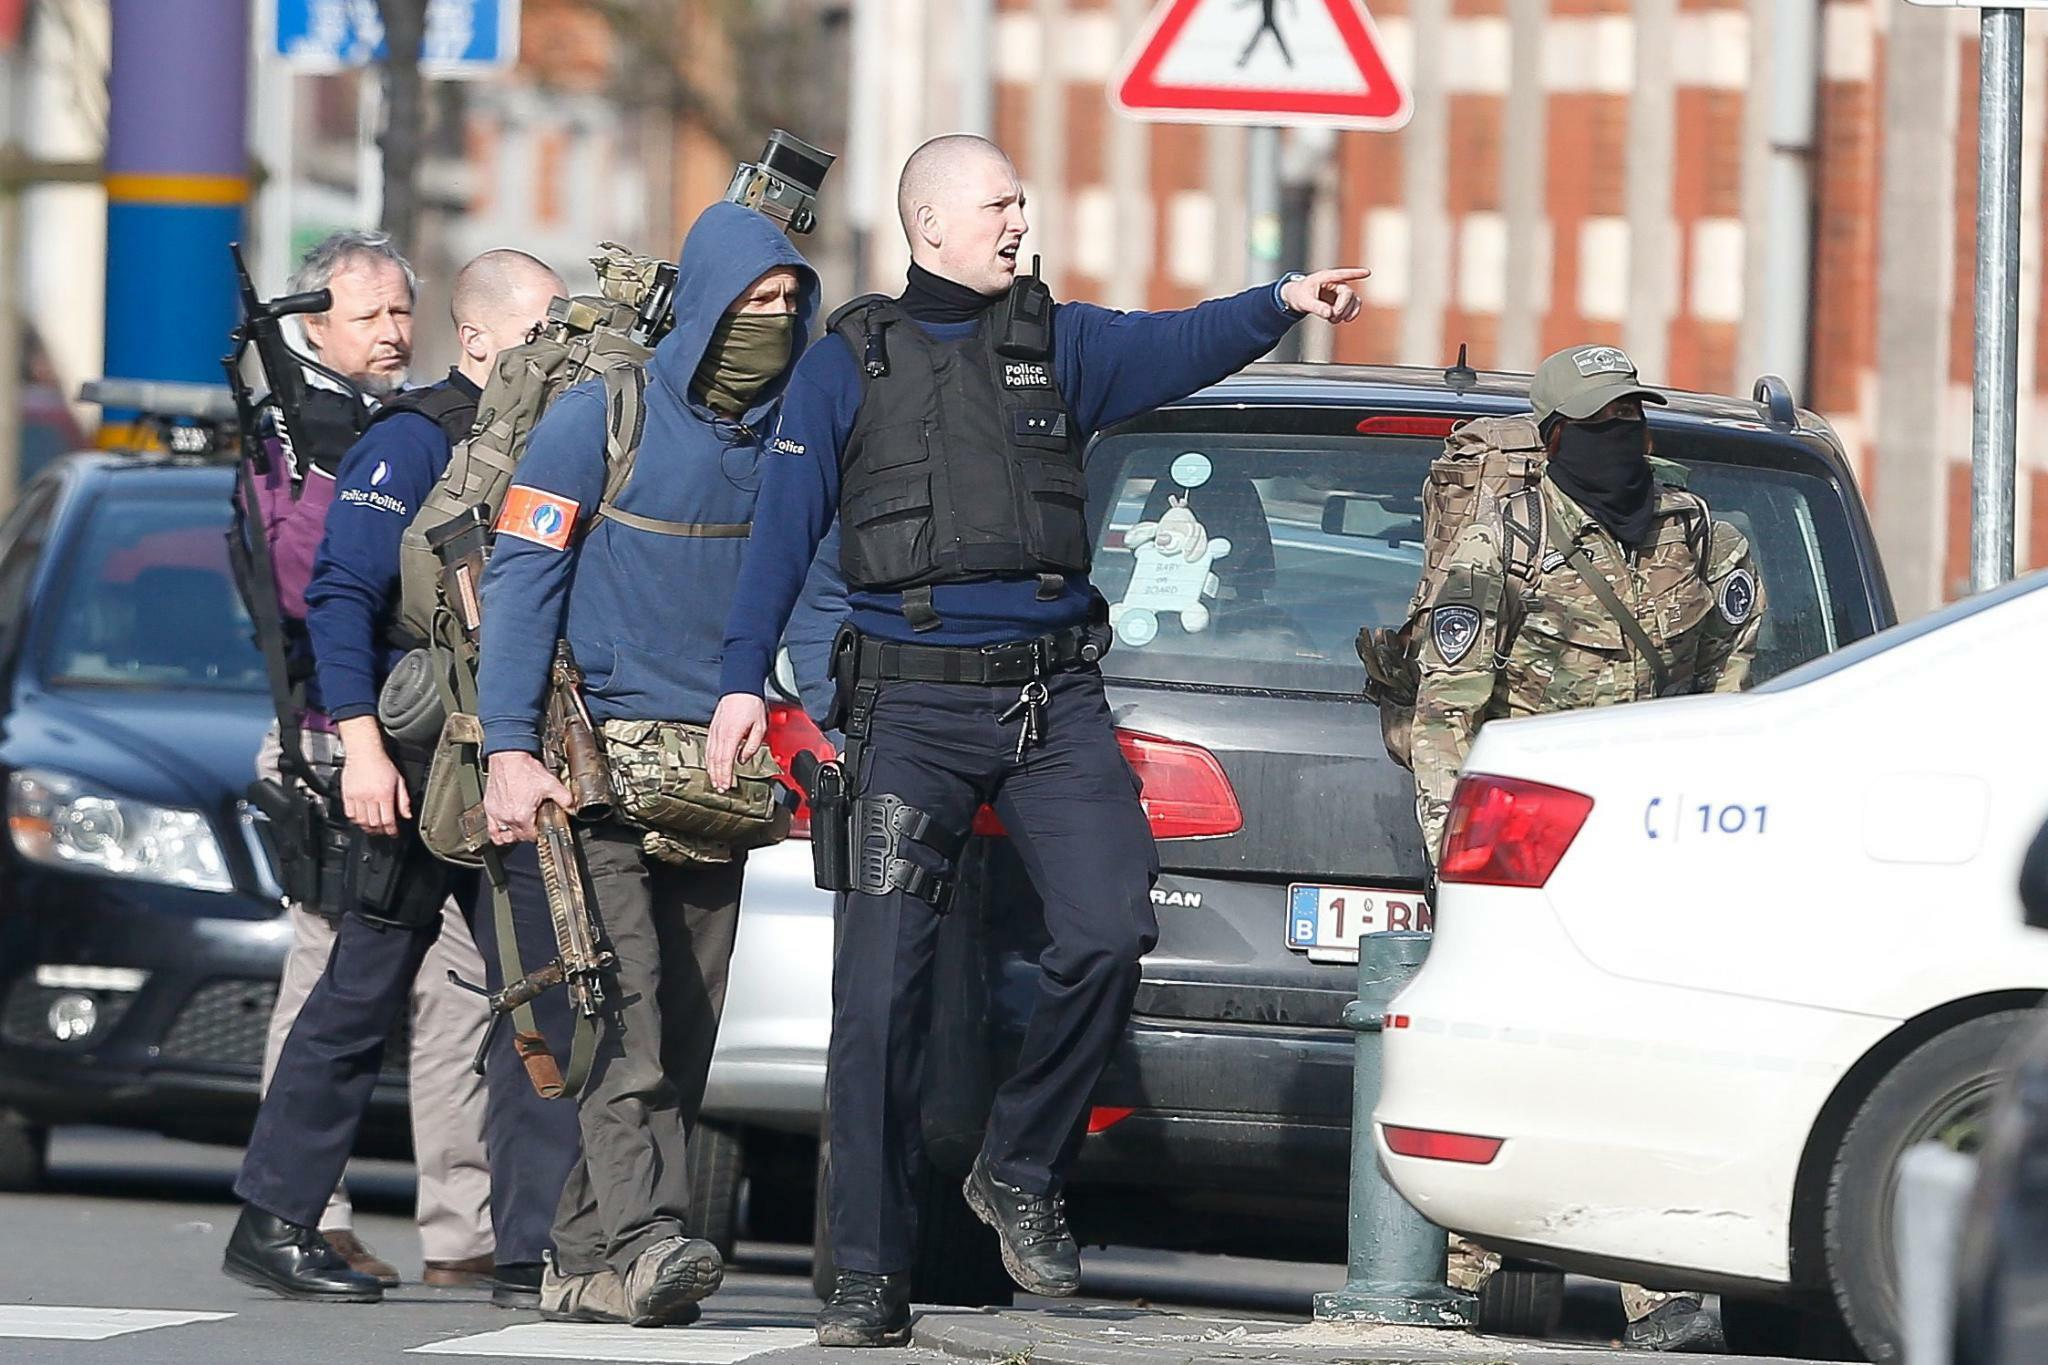 http://www.tagesspiegel.de/images/shootout-in-brussels-during-police-raid/13327532/1-format43.jpg